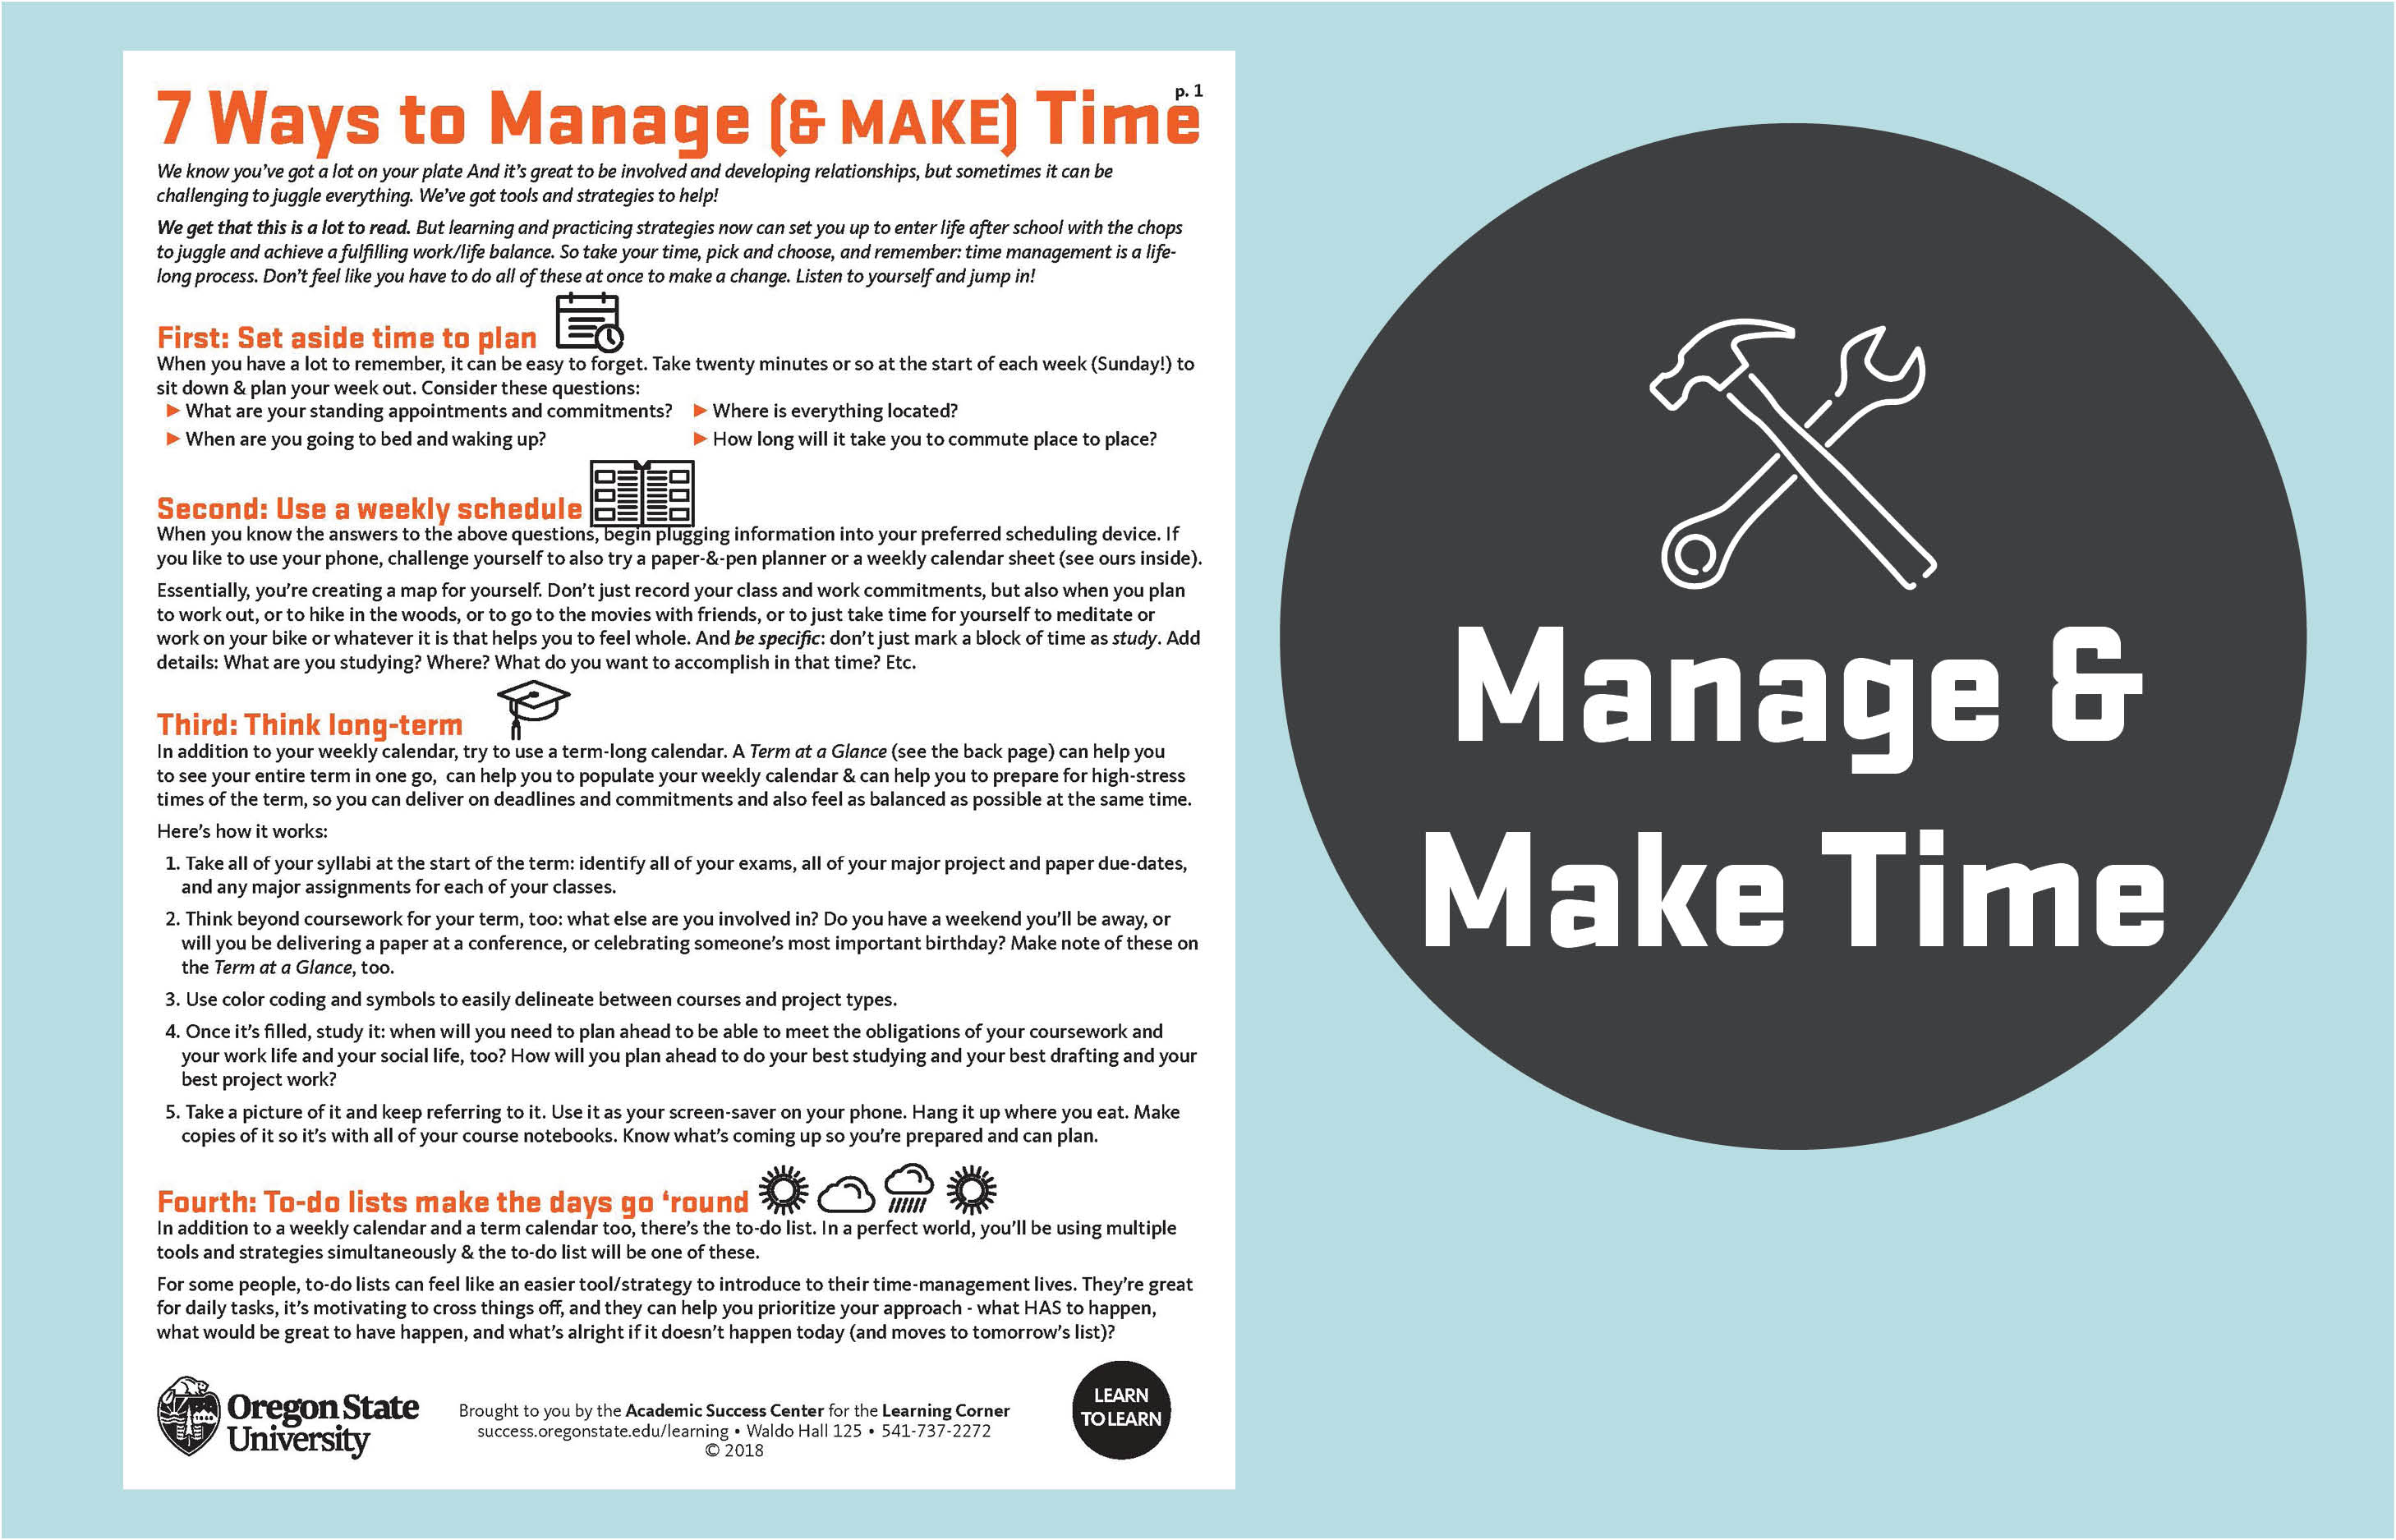 7 ways to manage and make time handout